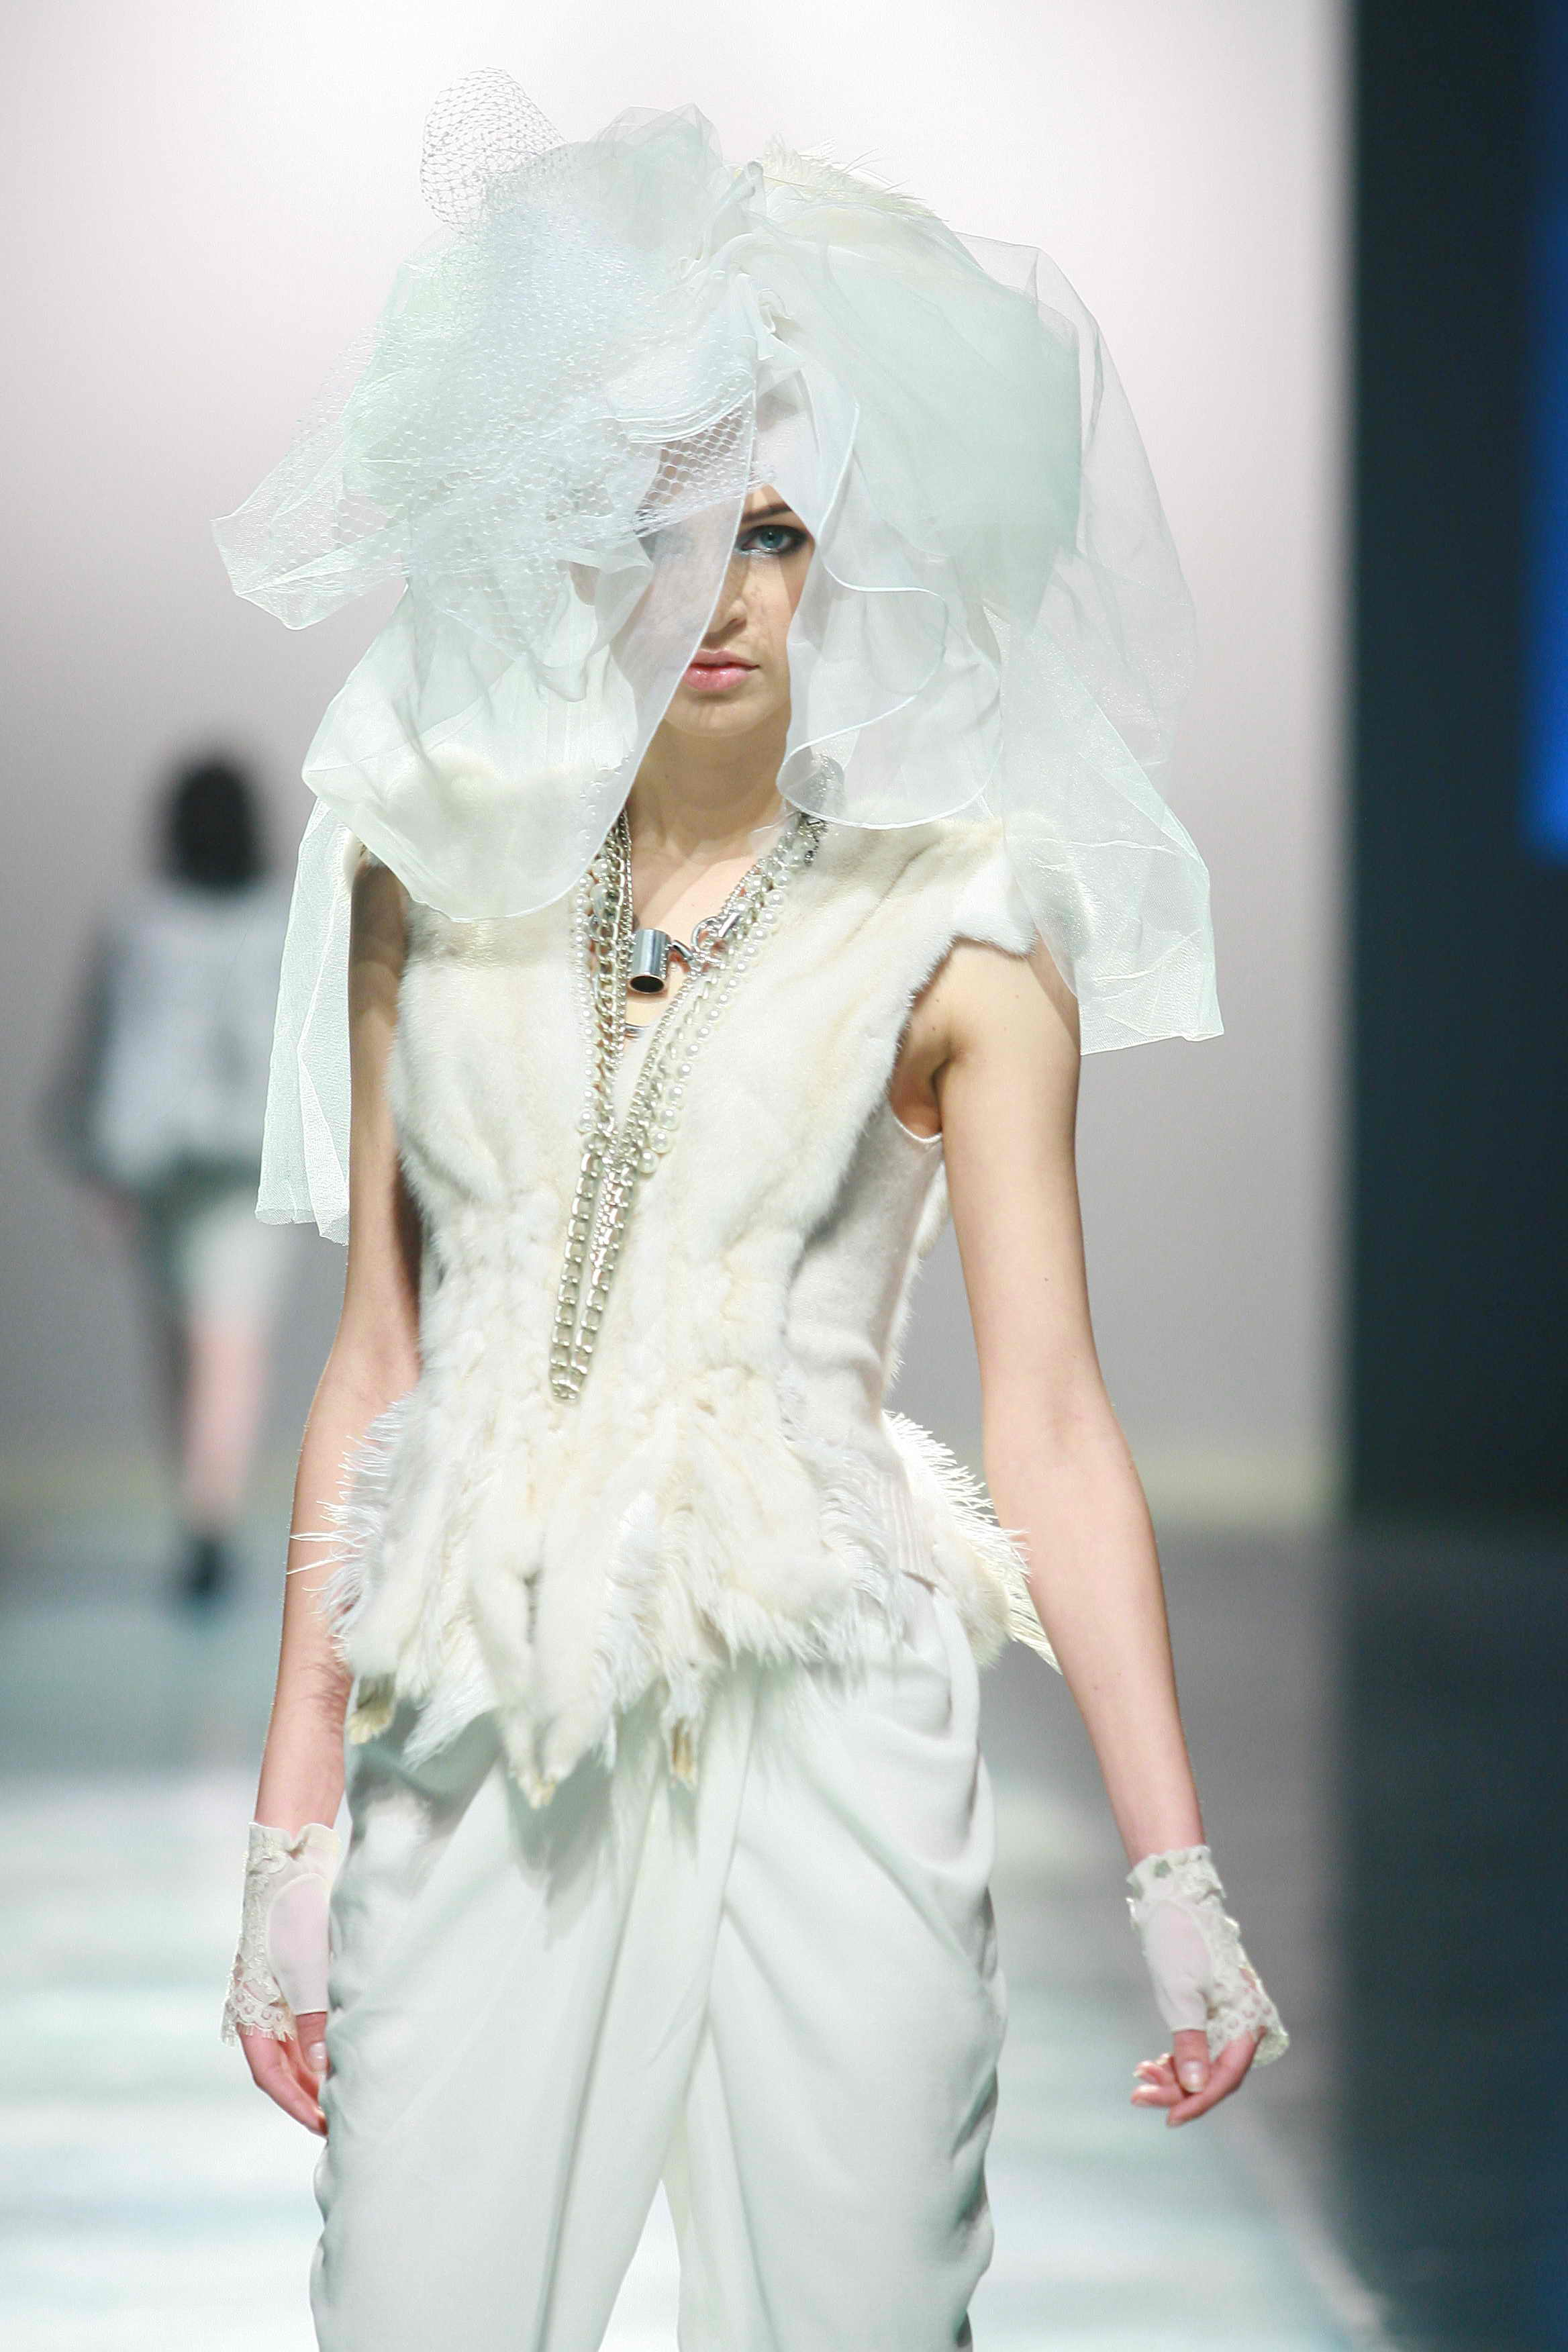 Hktdc Stages Style Hong Kong Fashion Show In